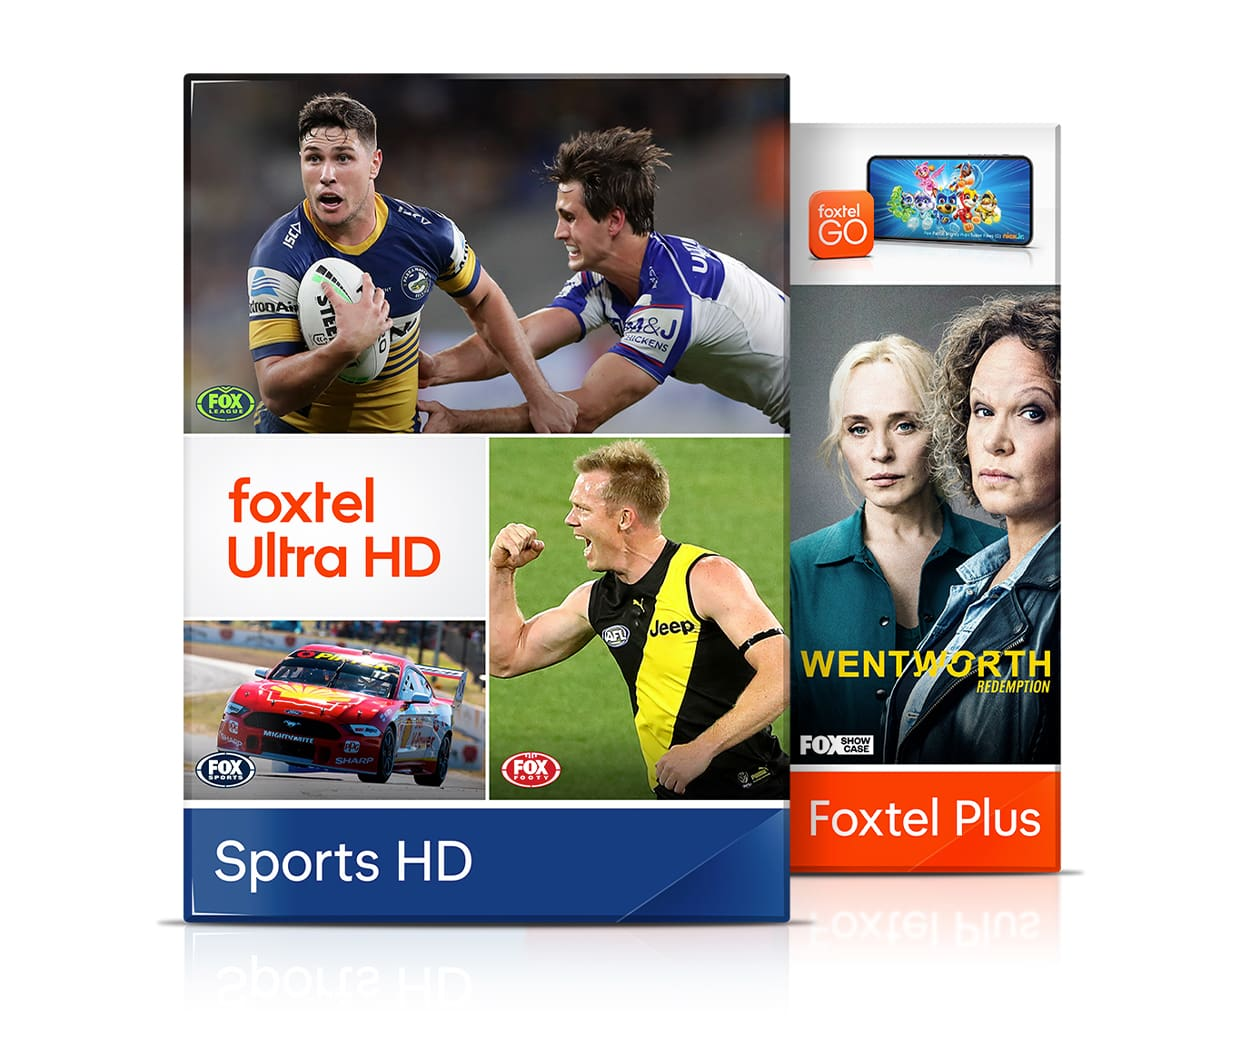 Watch 12 channels of sports including Rugby on the Foxtel iQ box, included with the Sports HD package